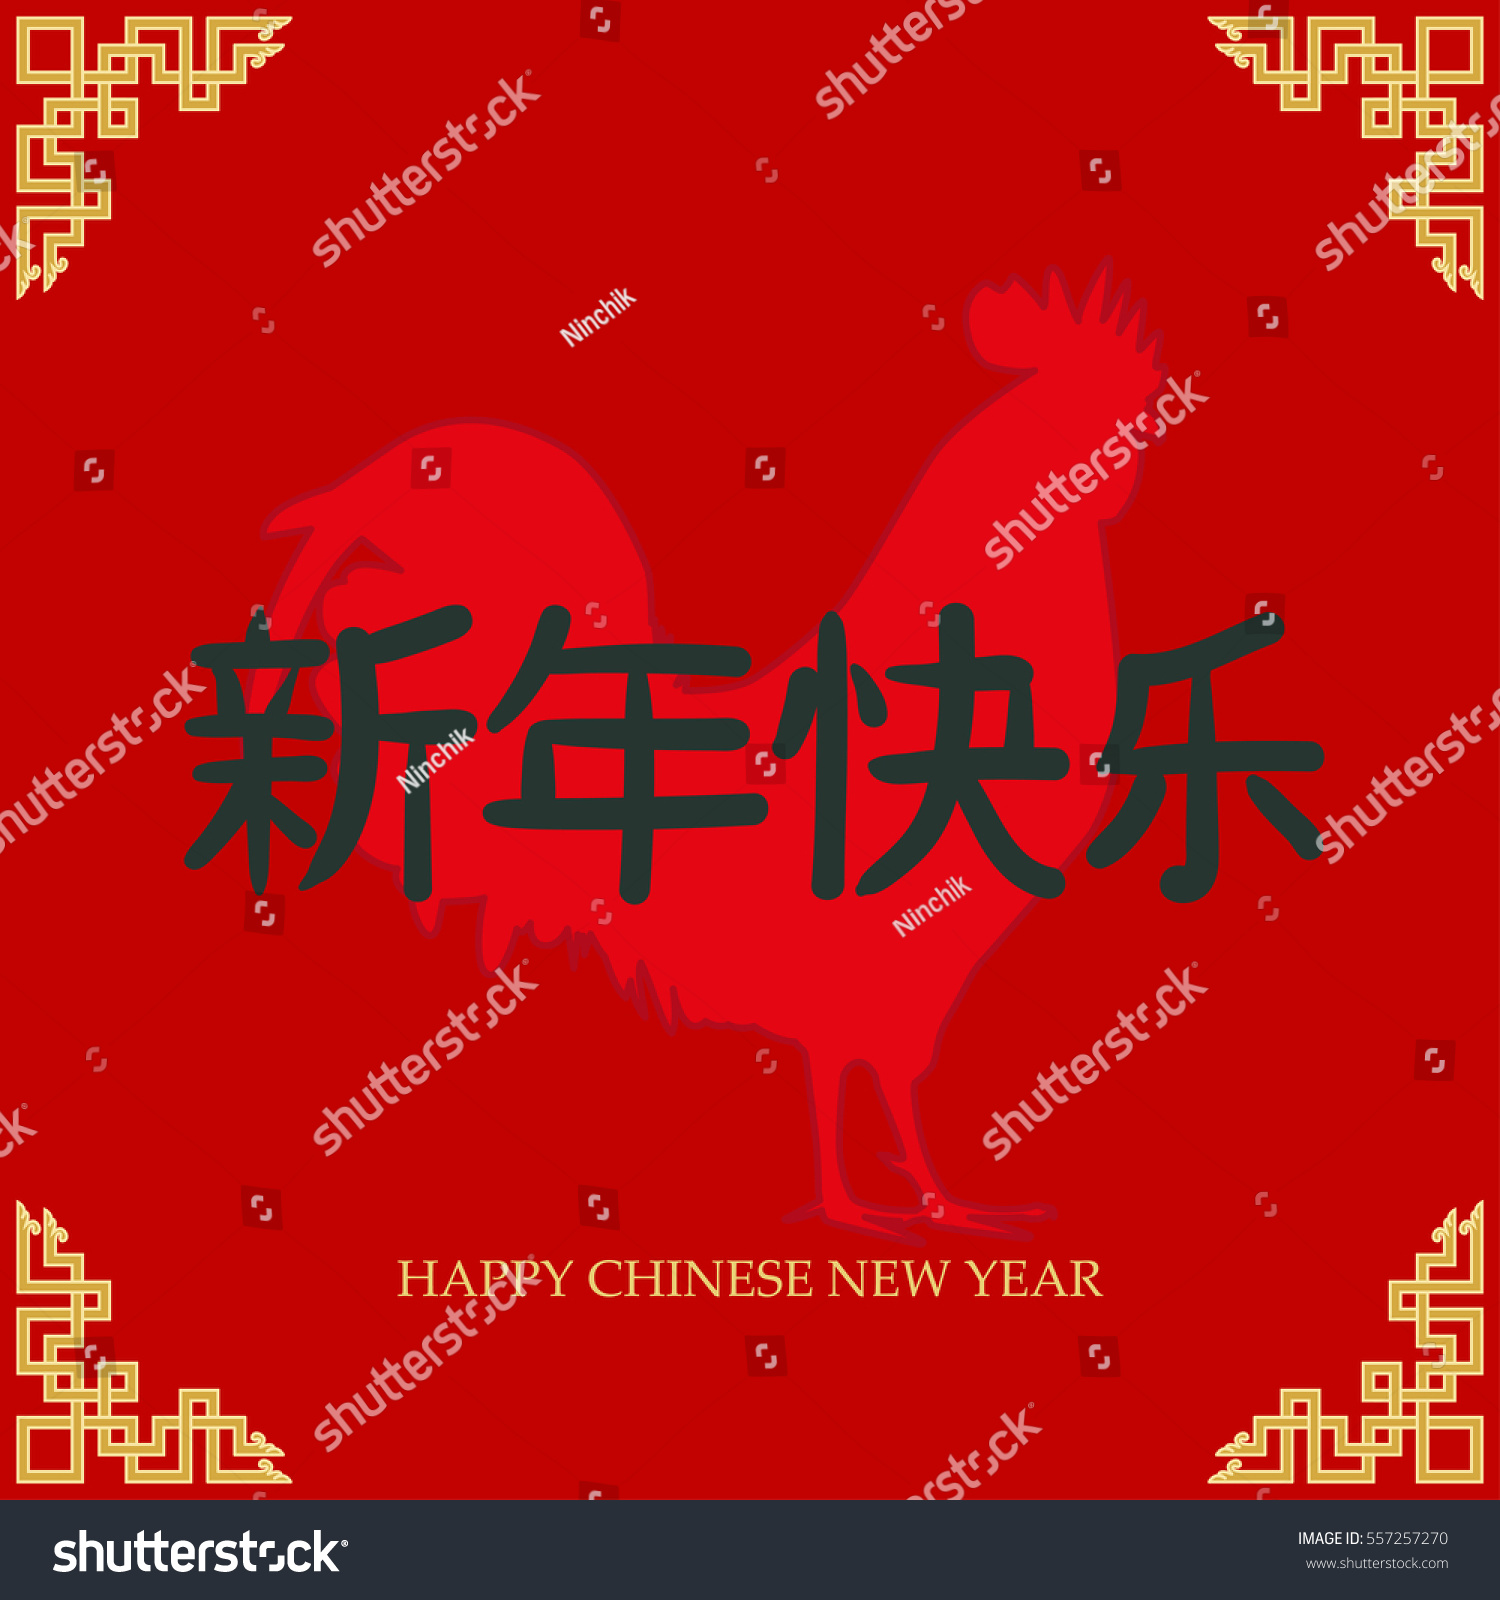 Chinese New Year Illustration Rooster Symbol Stock Vector Royalty